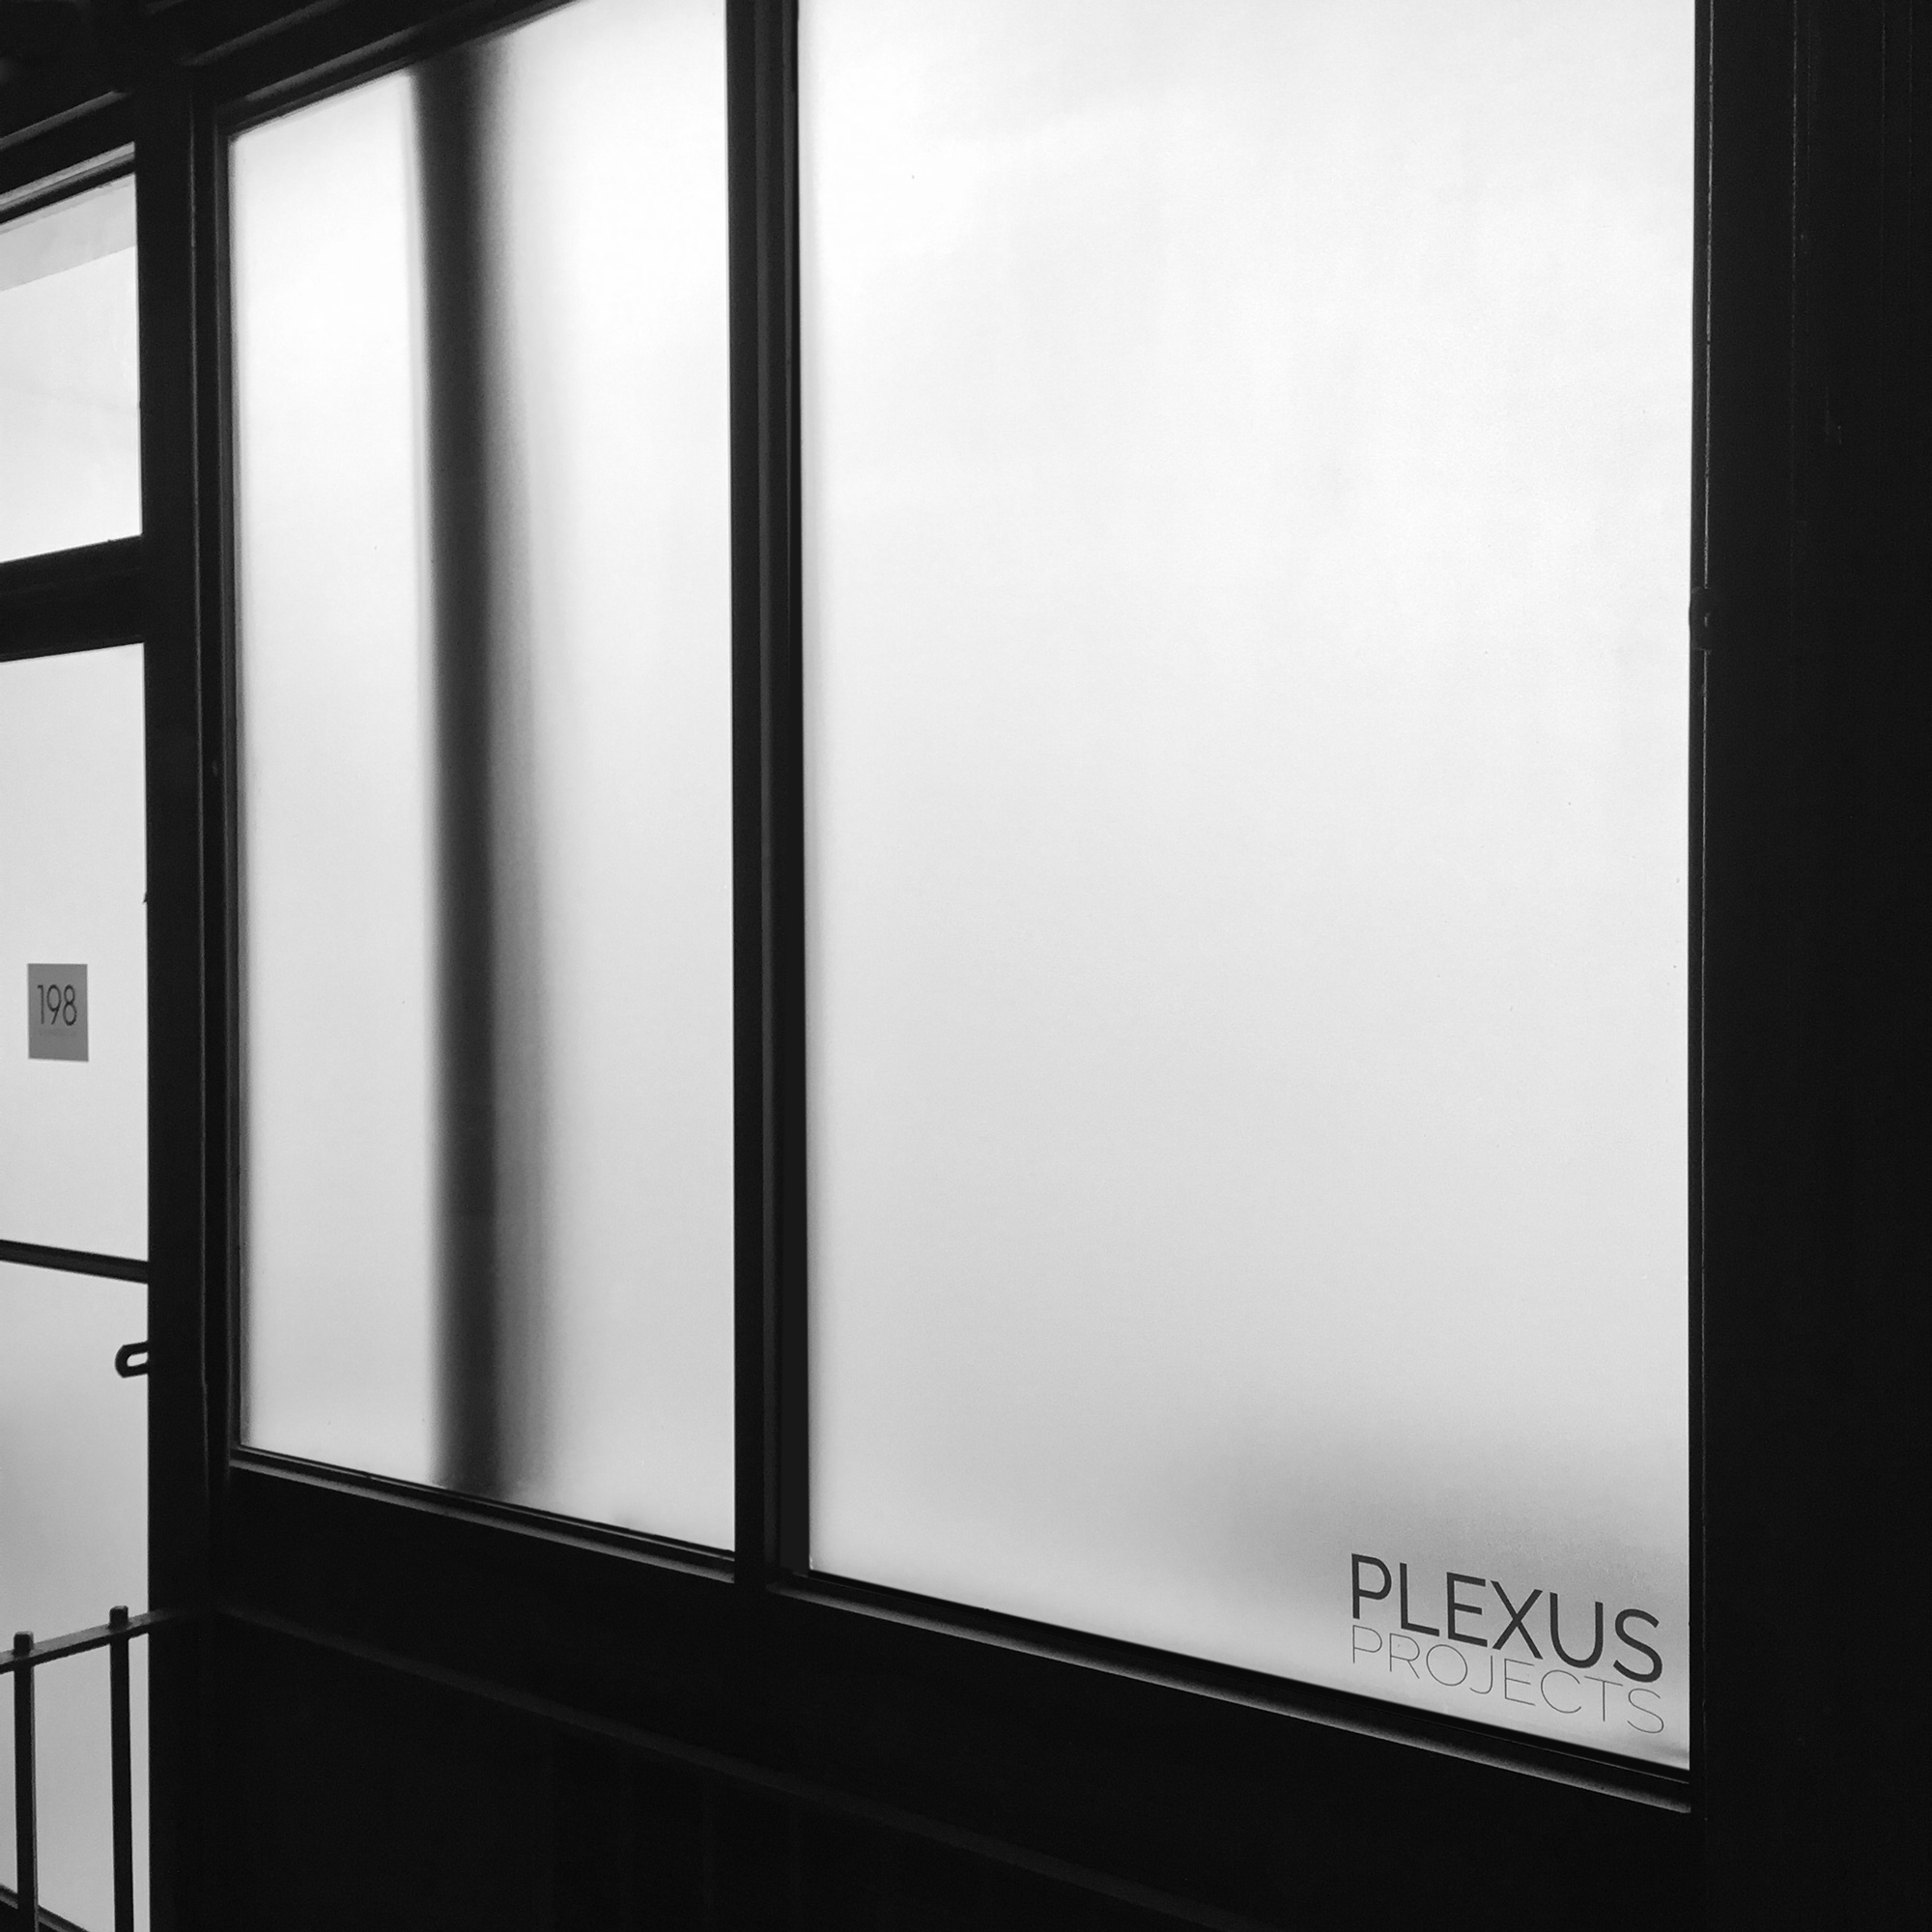 plexus-projects-bw.jpg